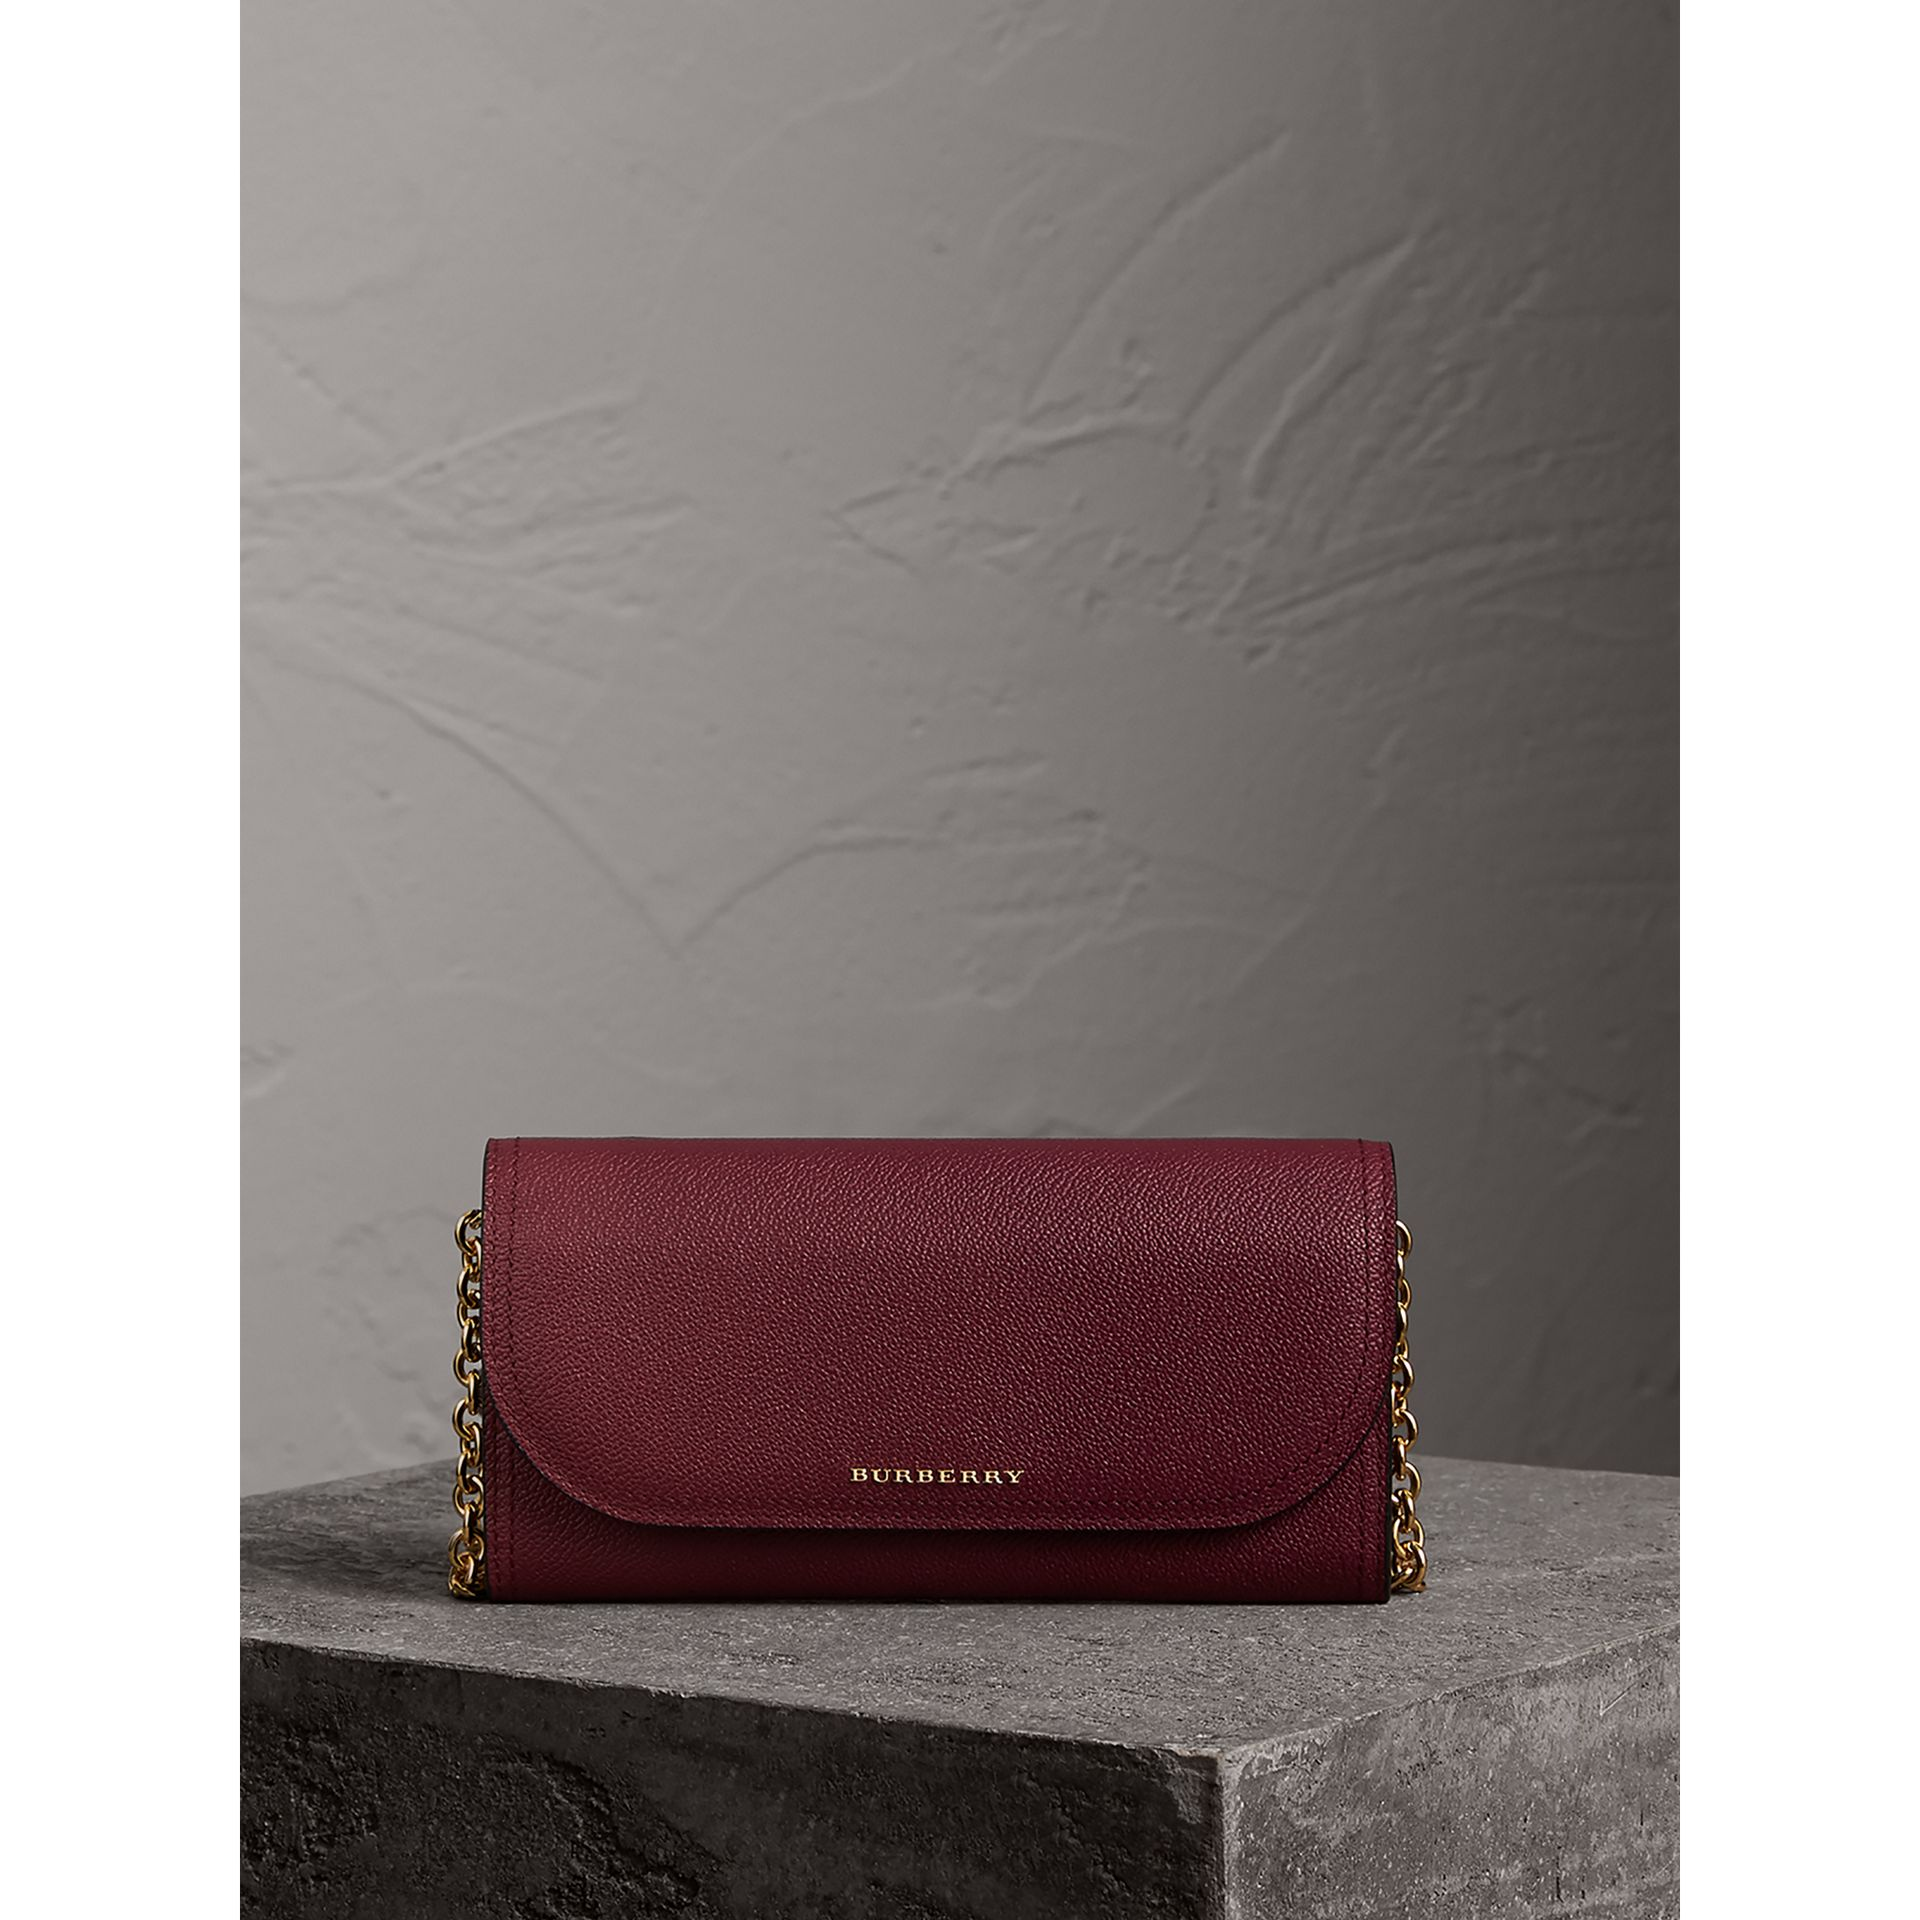 Leather Wallet with Chain in Dark Plum - Women | Burberry United States - gallery image 5